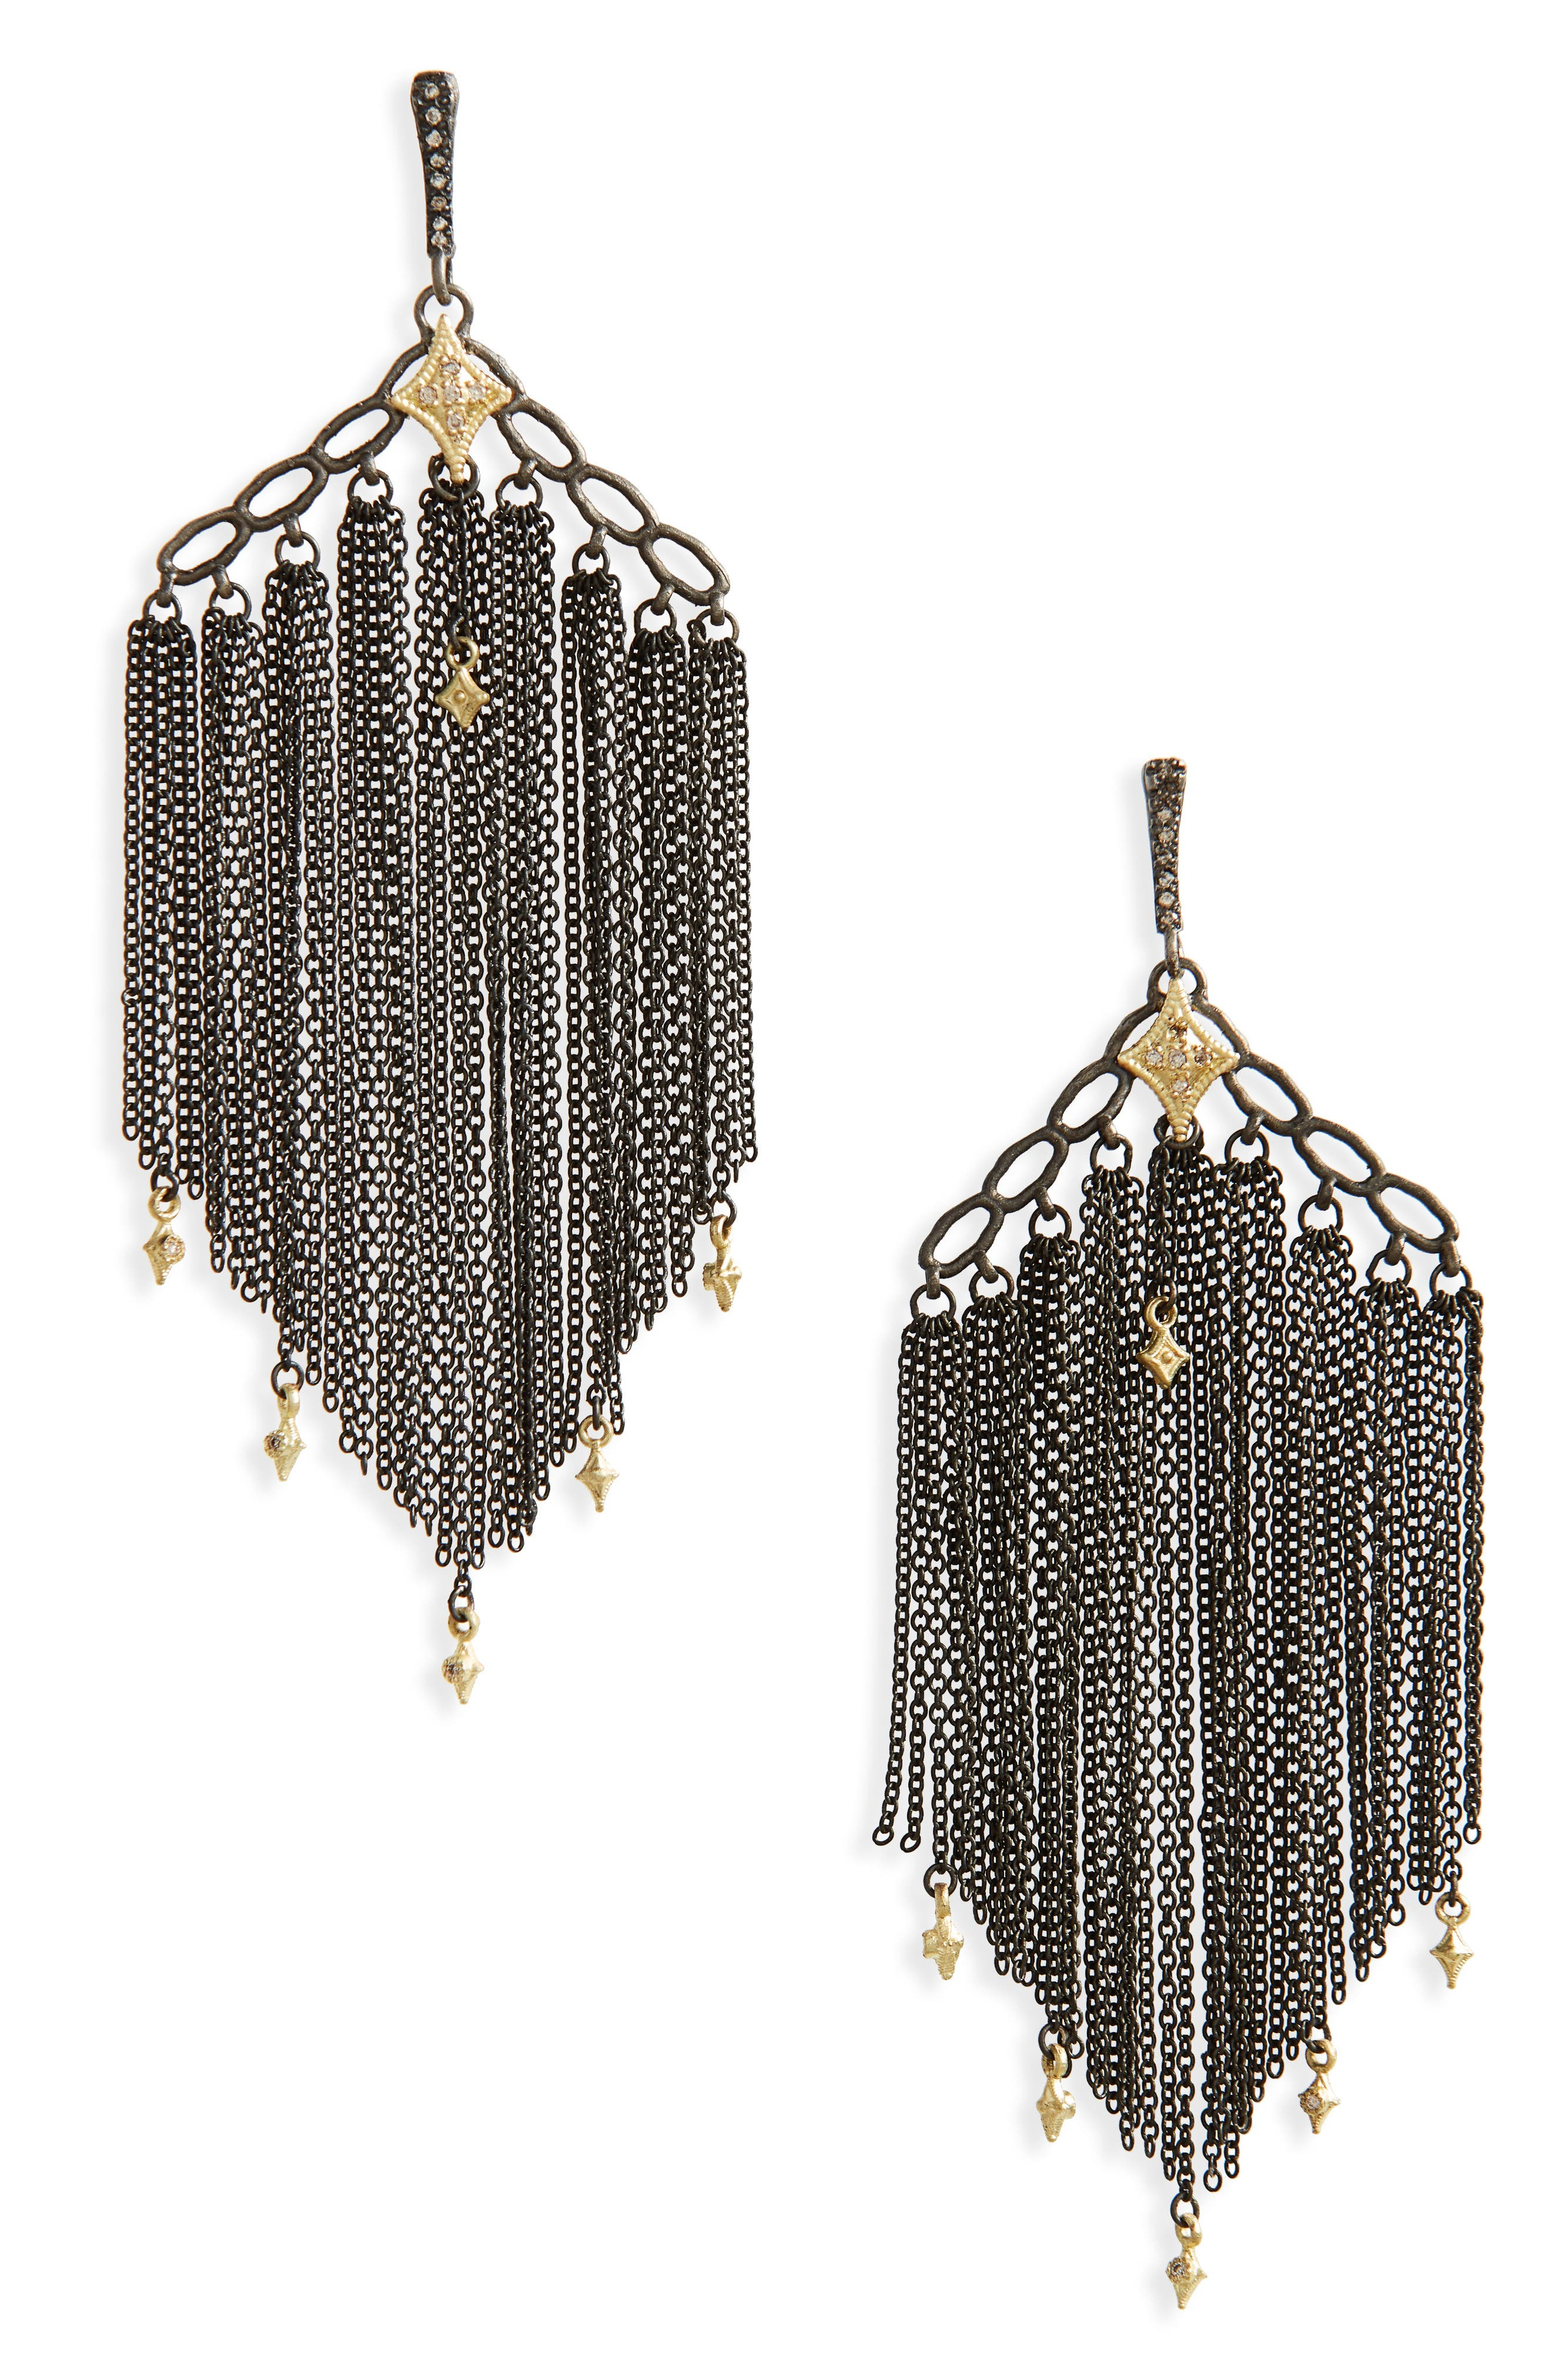 Old World Crivelli Chain Earrings,                             Main thumbnail 1, color,                             Blackened Silver/ Diamonds